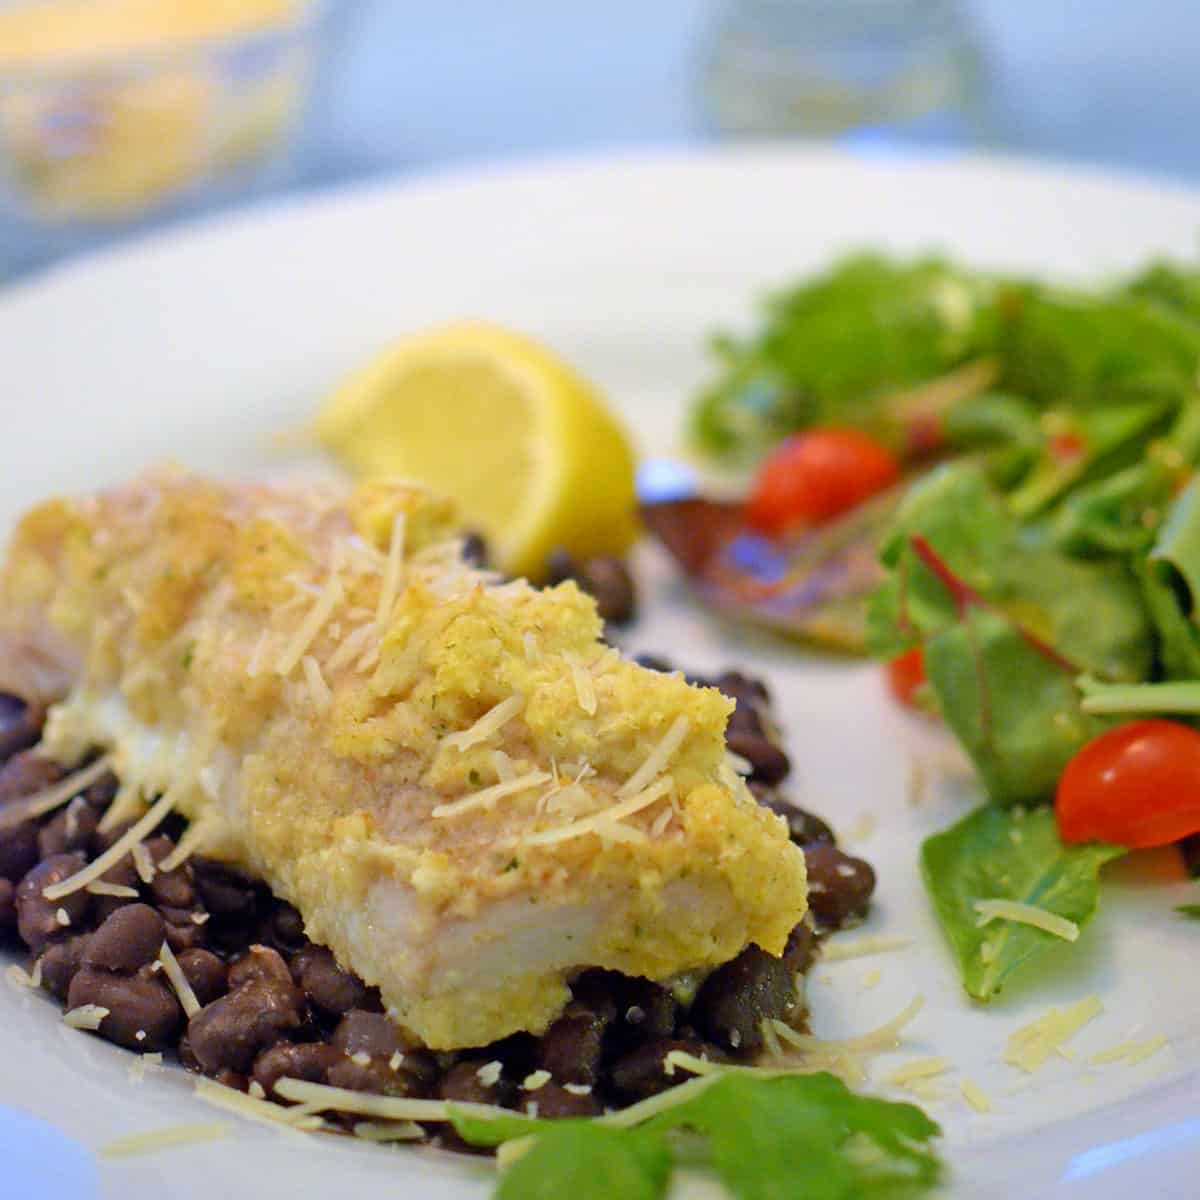 A plate of food with whitefish and black beans and green salad.